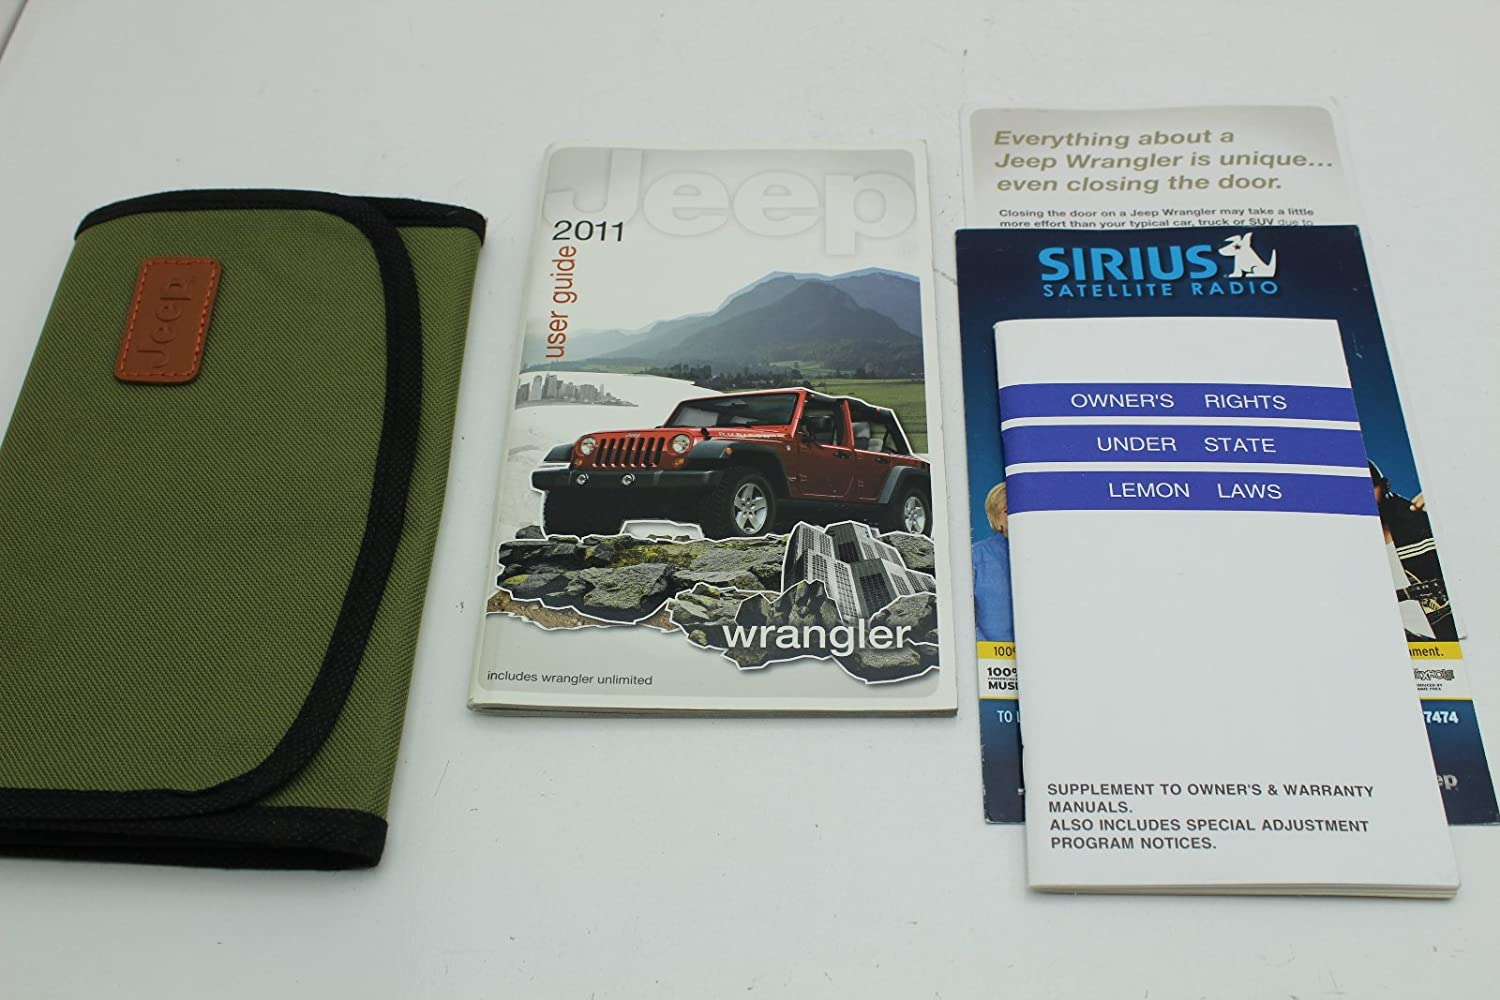 2011 Jeep Wrangler Owners Manual